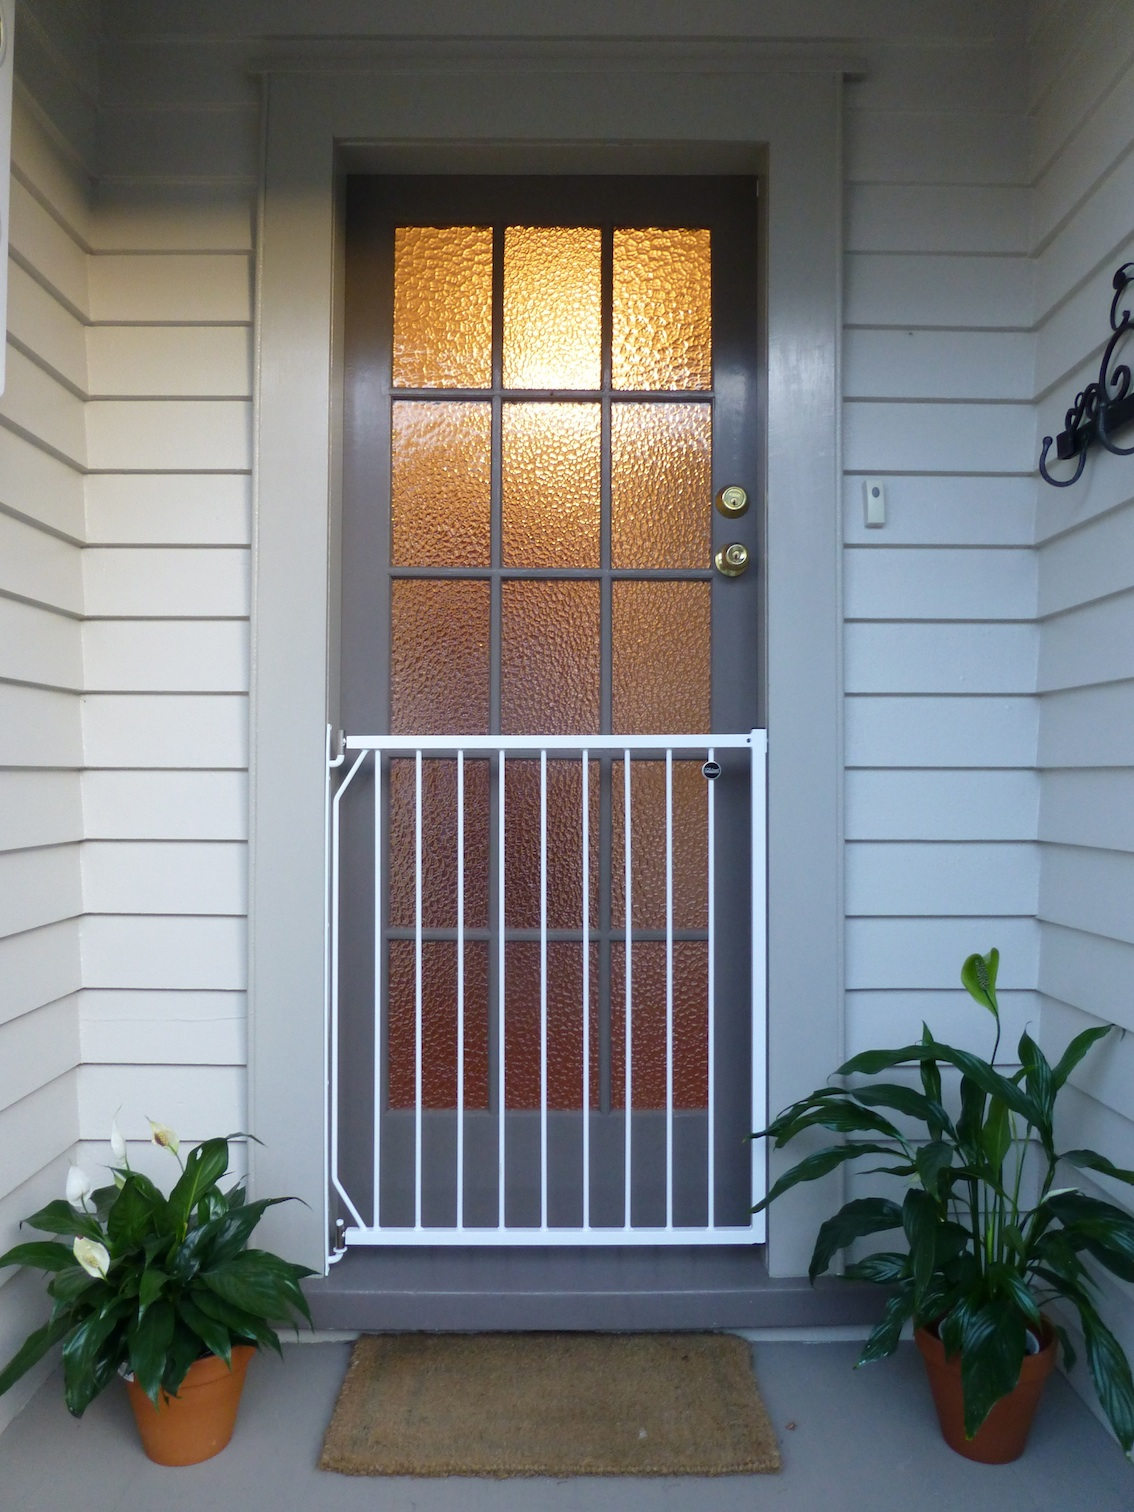 Safety Doors Safety Grills: SECURITY DOORS MITRE 10 MEGA